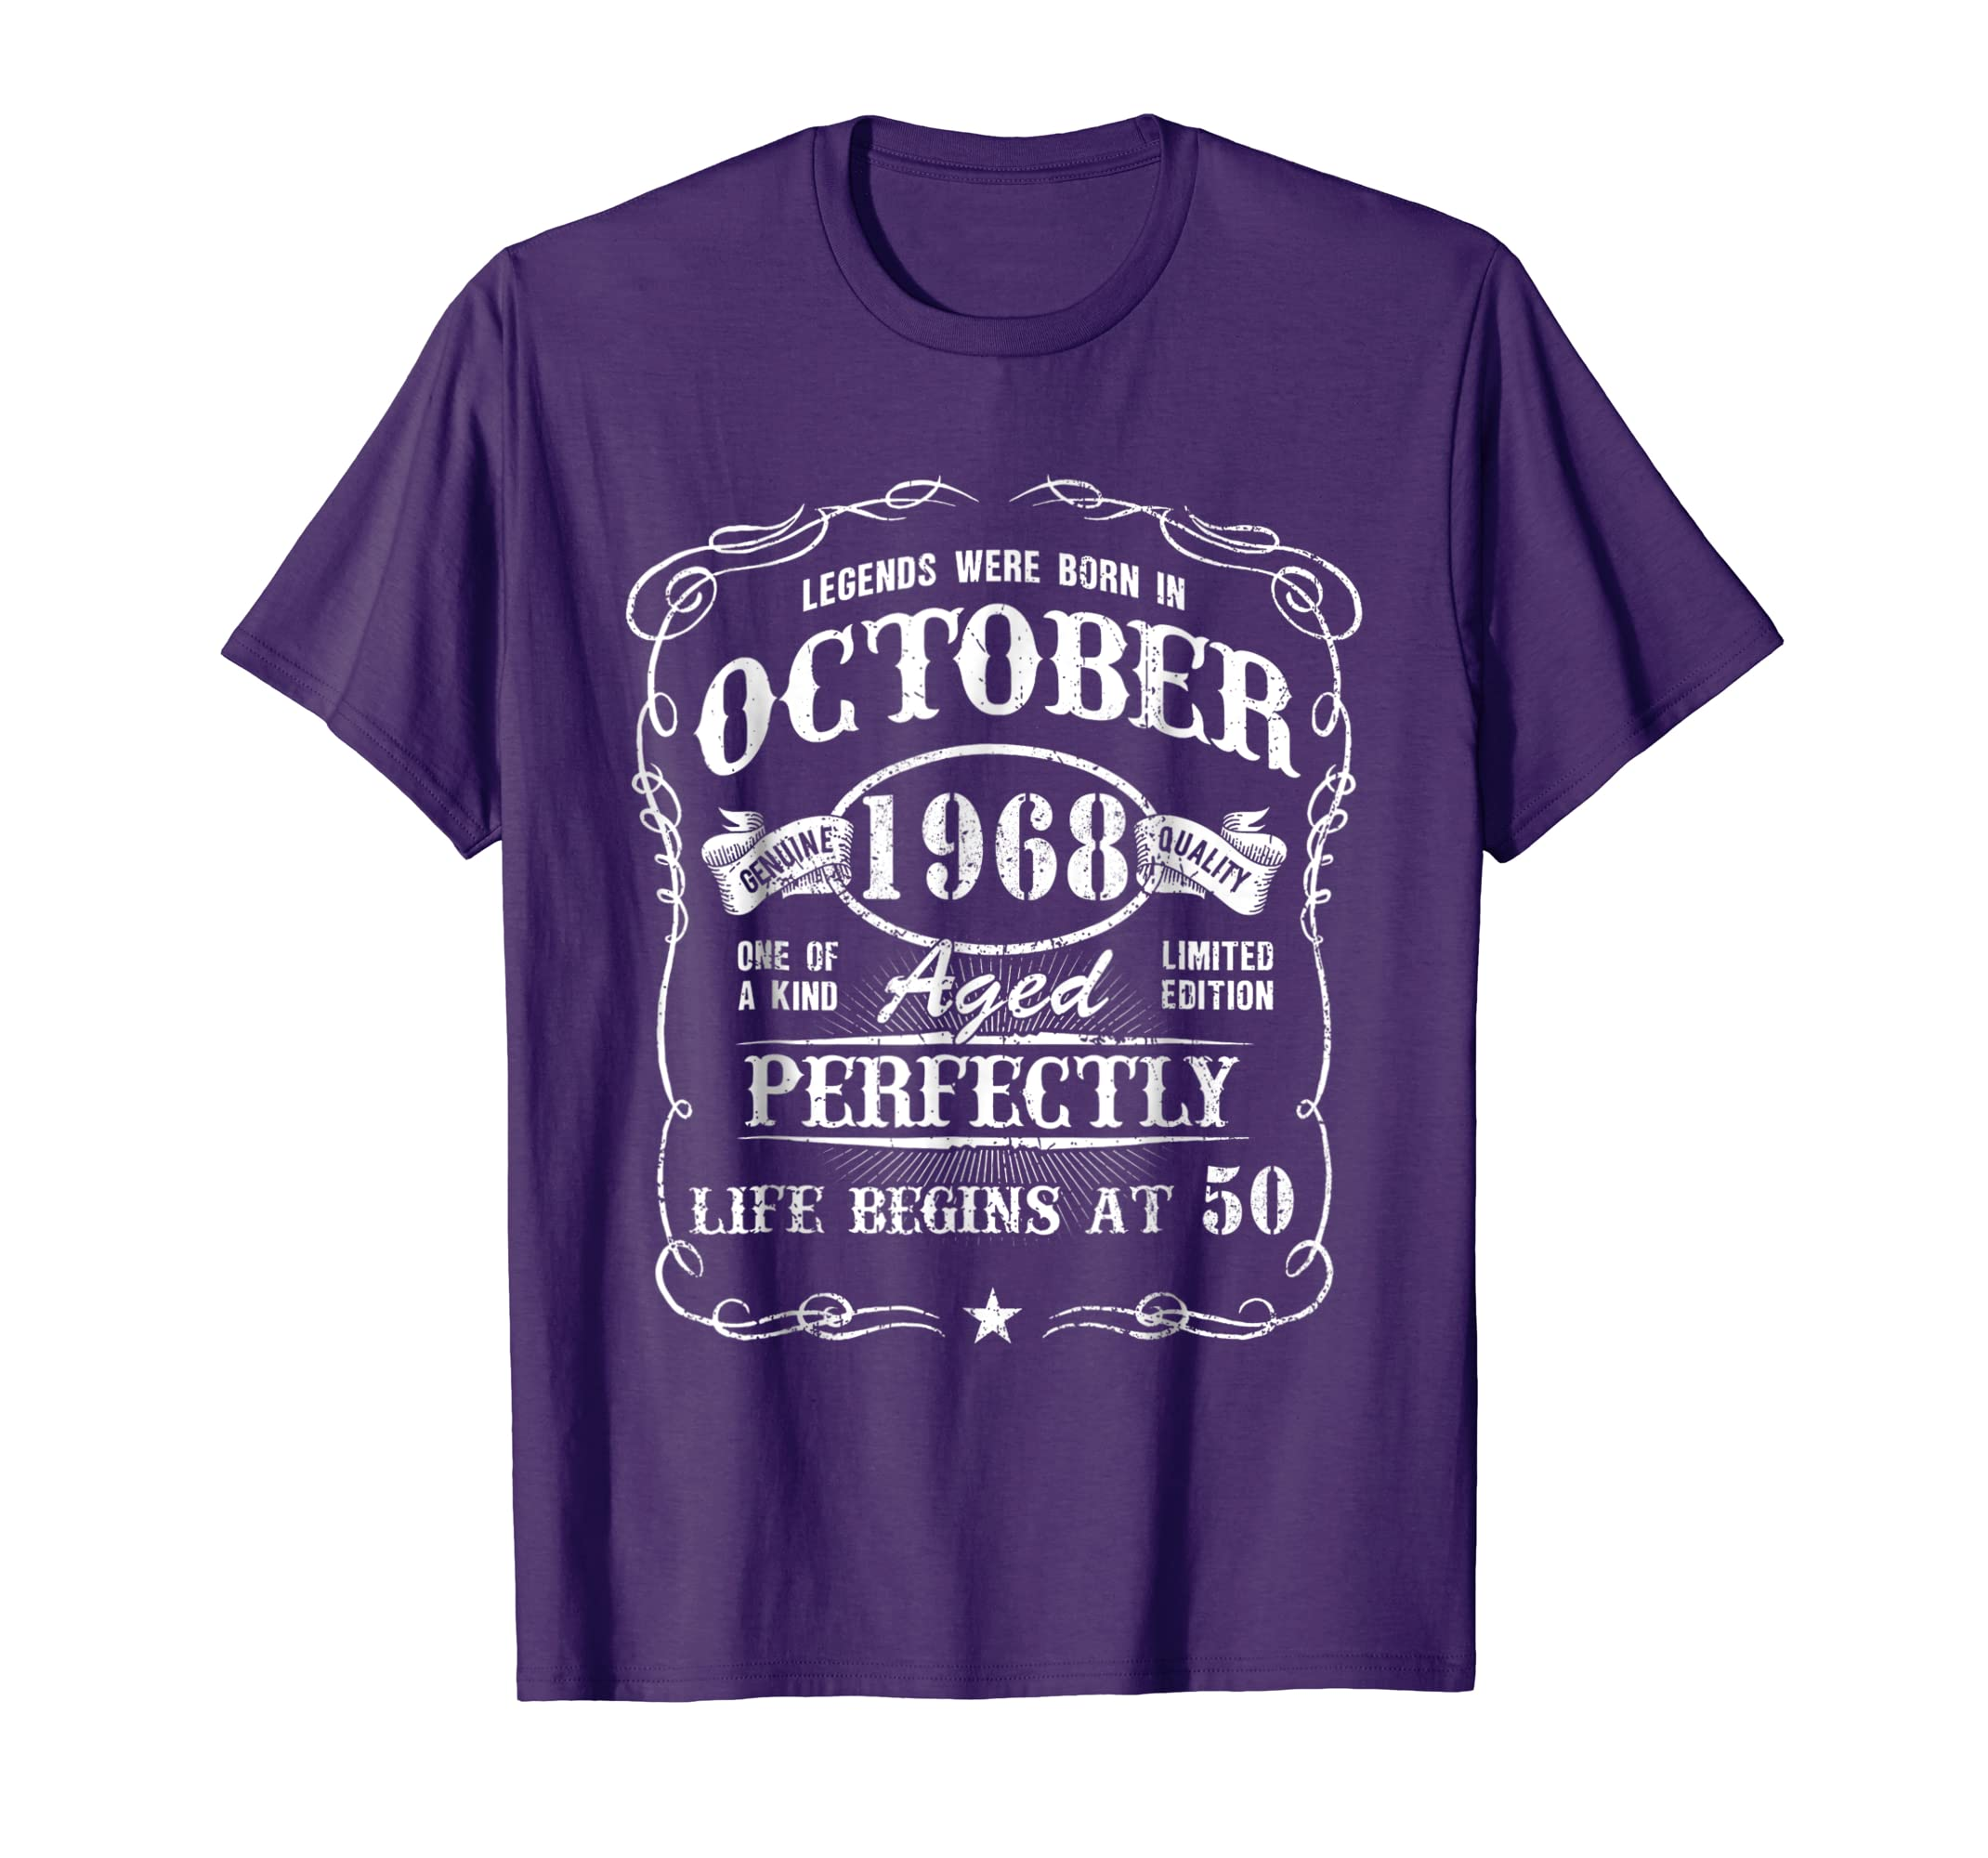 October 1968 Retro Shirt Vintage 50th Birthday Decorations Teechatpro